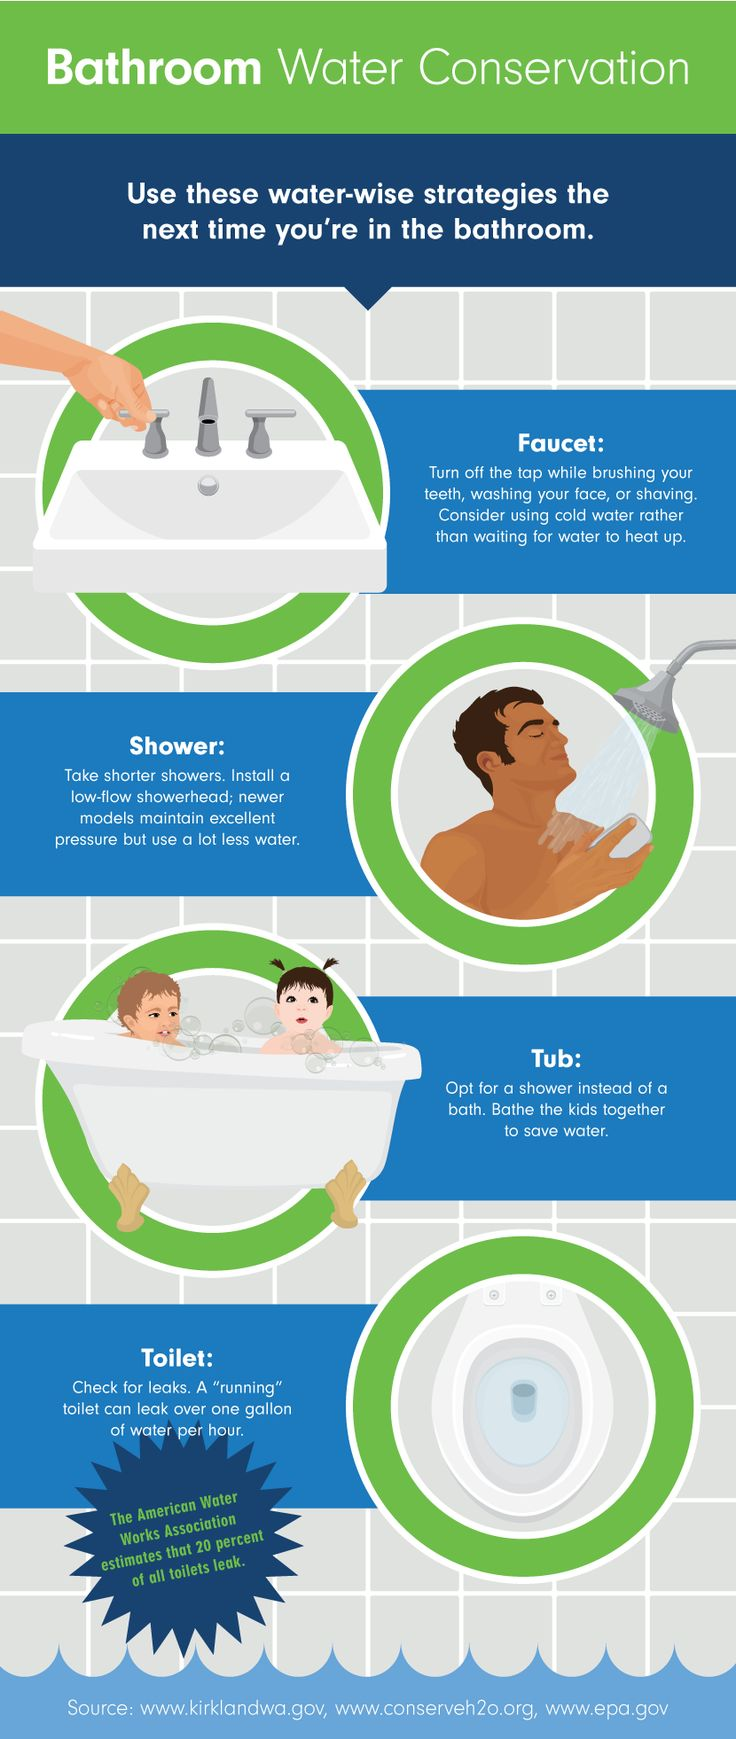 Bathroom Water Conservation - Reduce Water Waste: Simple Solutions for Using Less